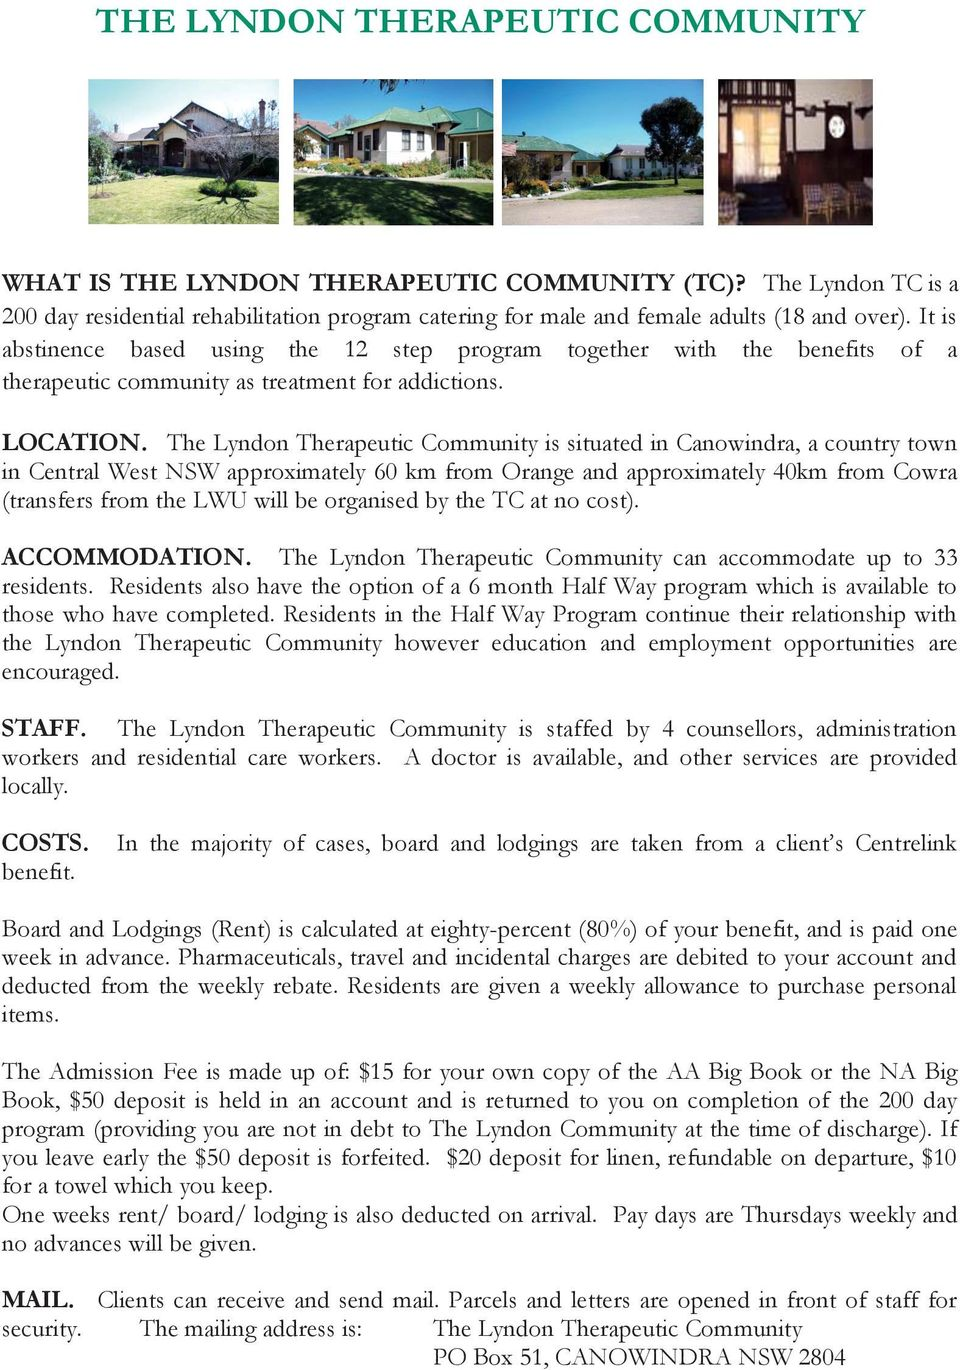 Lyndon It is TC is a abstinence 200 day based residential using rehabilitation the 12 program step program catering for together male and with female the adults benefits (18 and of over).